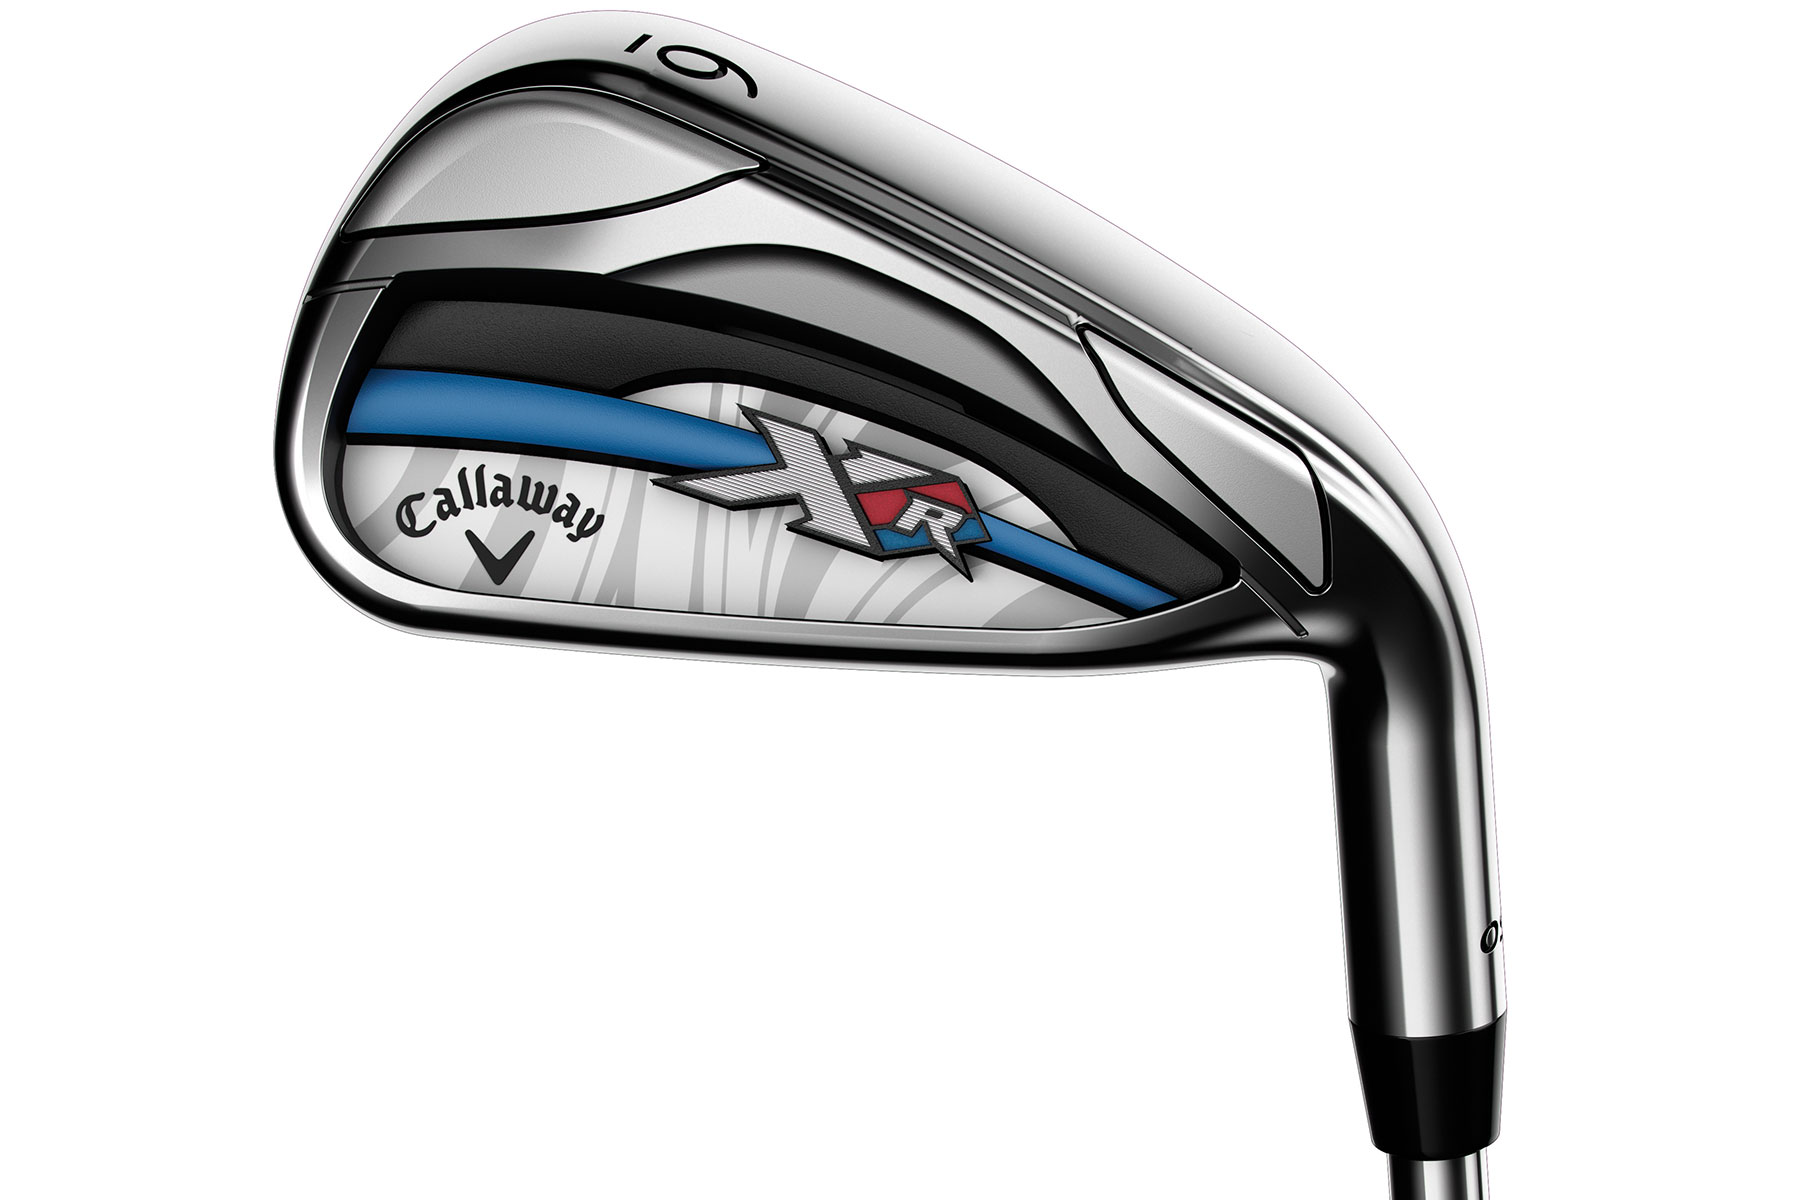 callaway golf ladies xr os irons graphite 5 sw online golf. Black Bedroom Furniture Sets. Home Design Ideas